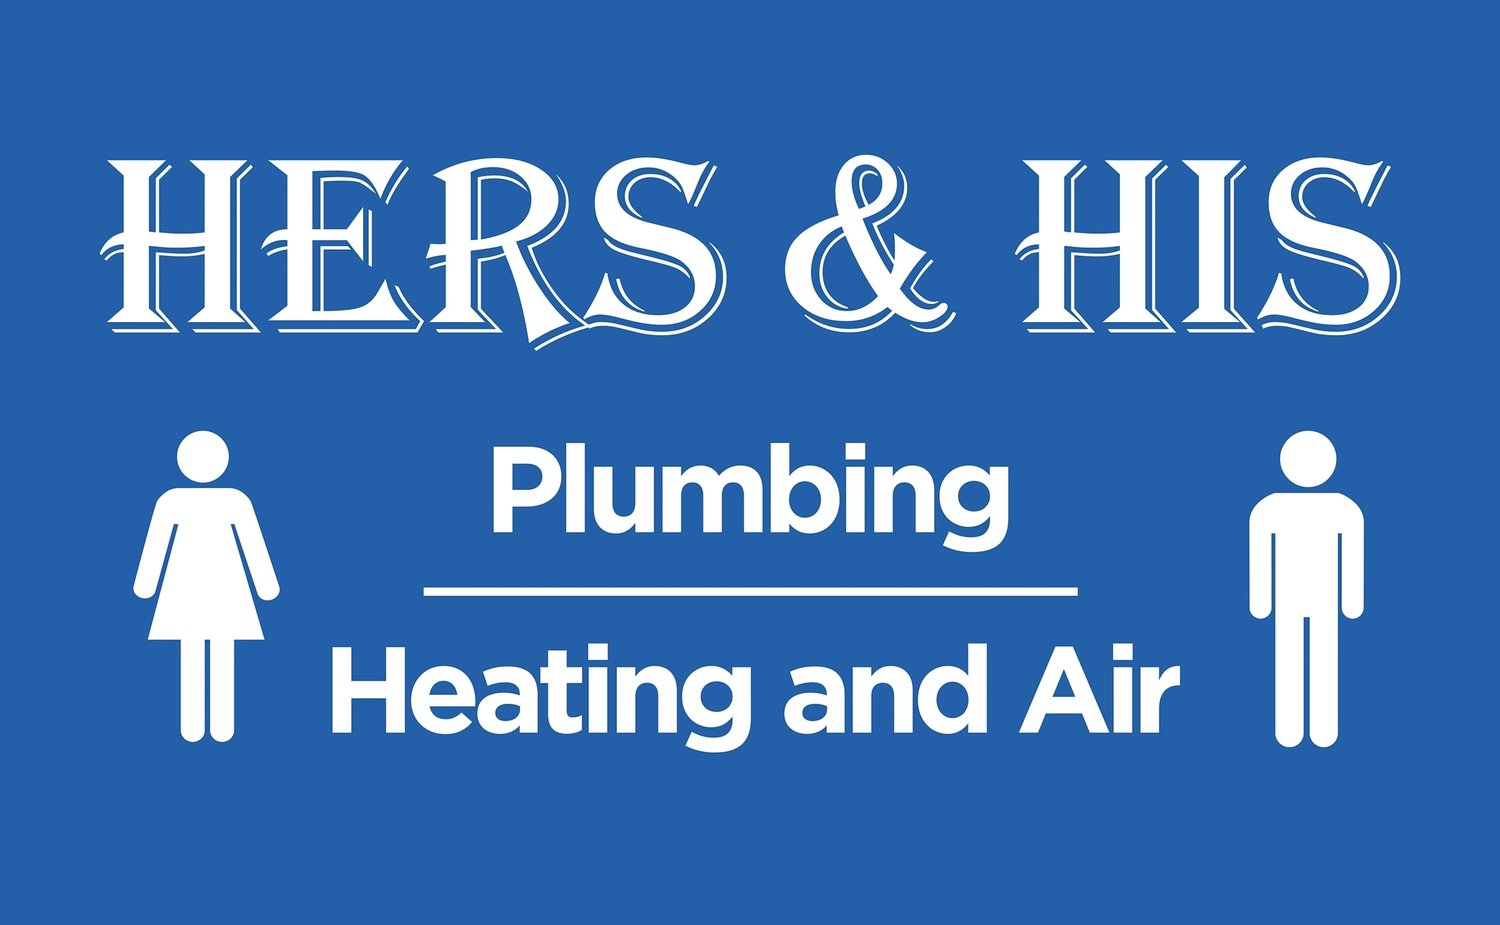 Hers & His Plumbing, Heating and Air